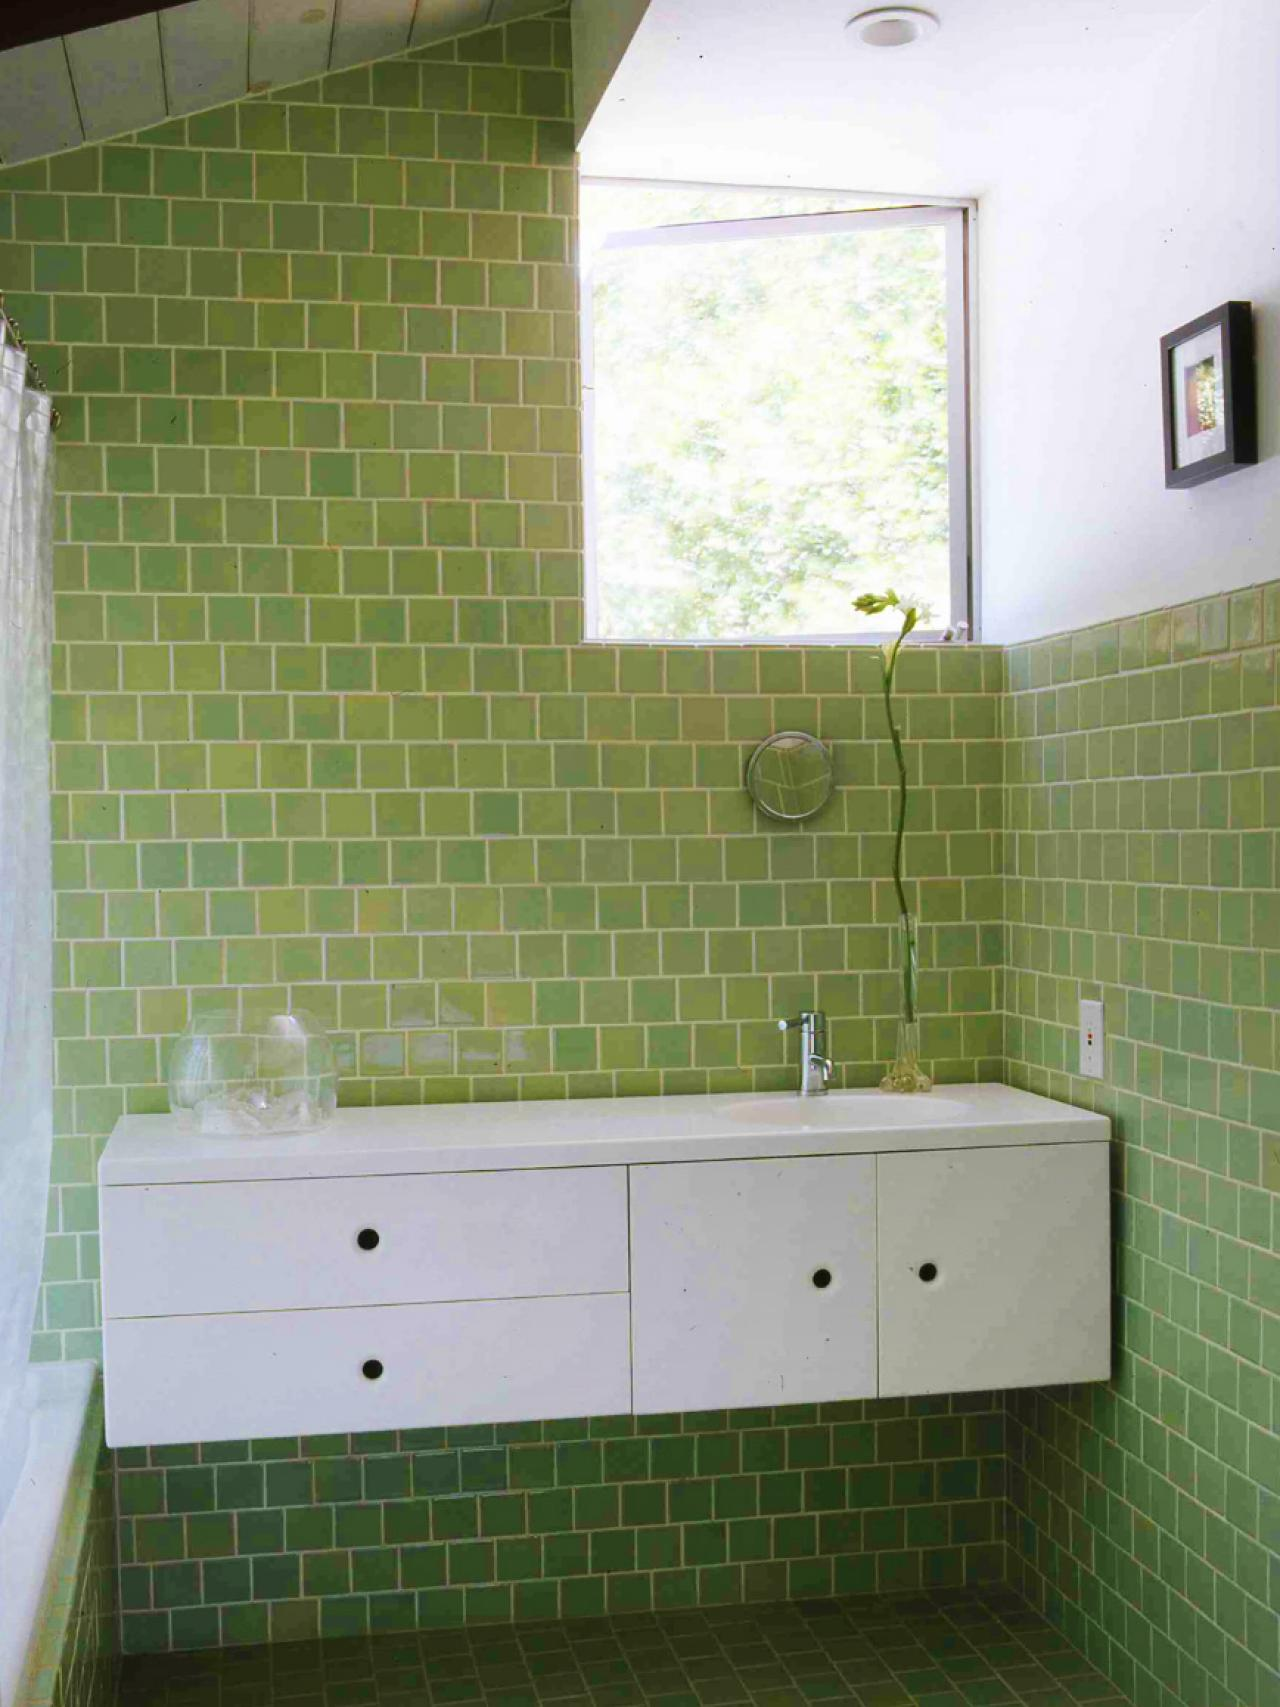 Bathroom Tiles Trends 2013 9 bold bathroom tile designs | hgtv's decorating & design blog | hgtv